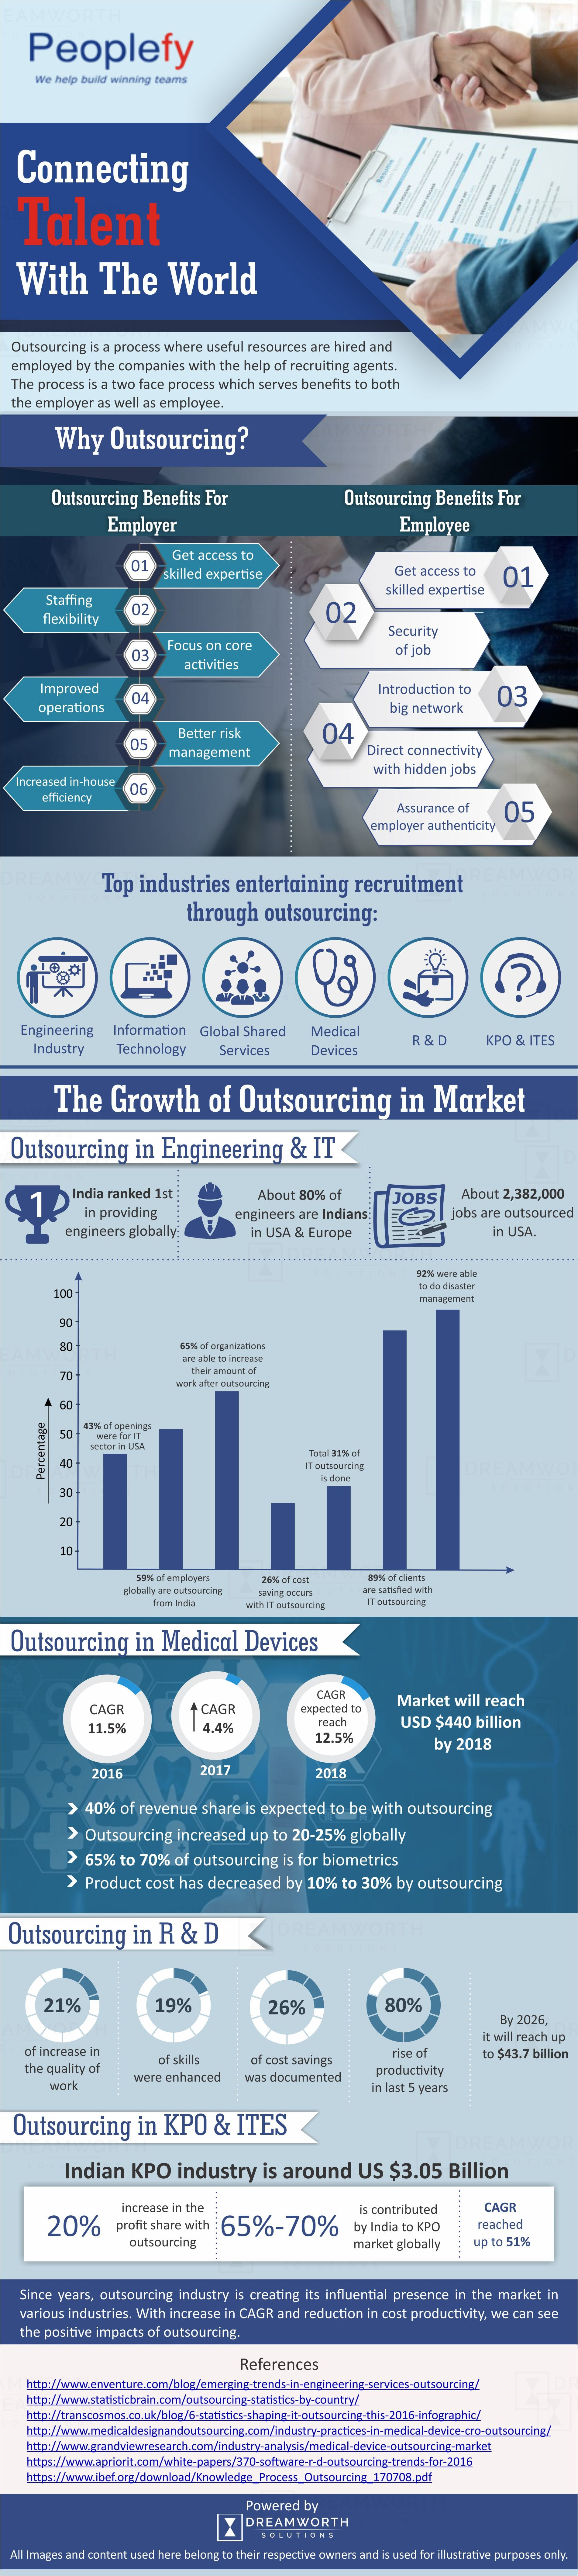 This infographic shows how to improve the growth outsourcing in market